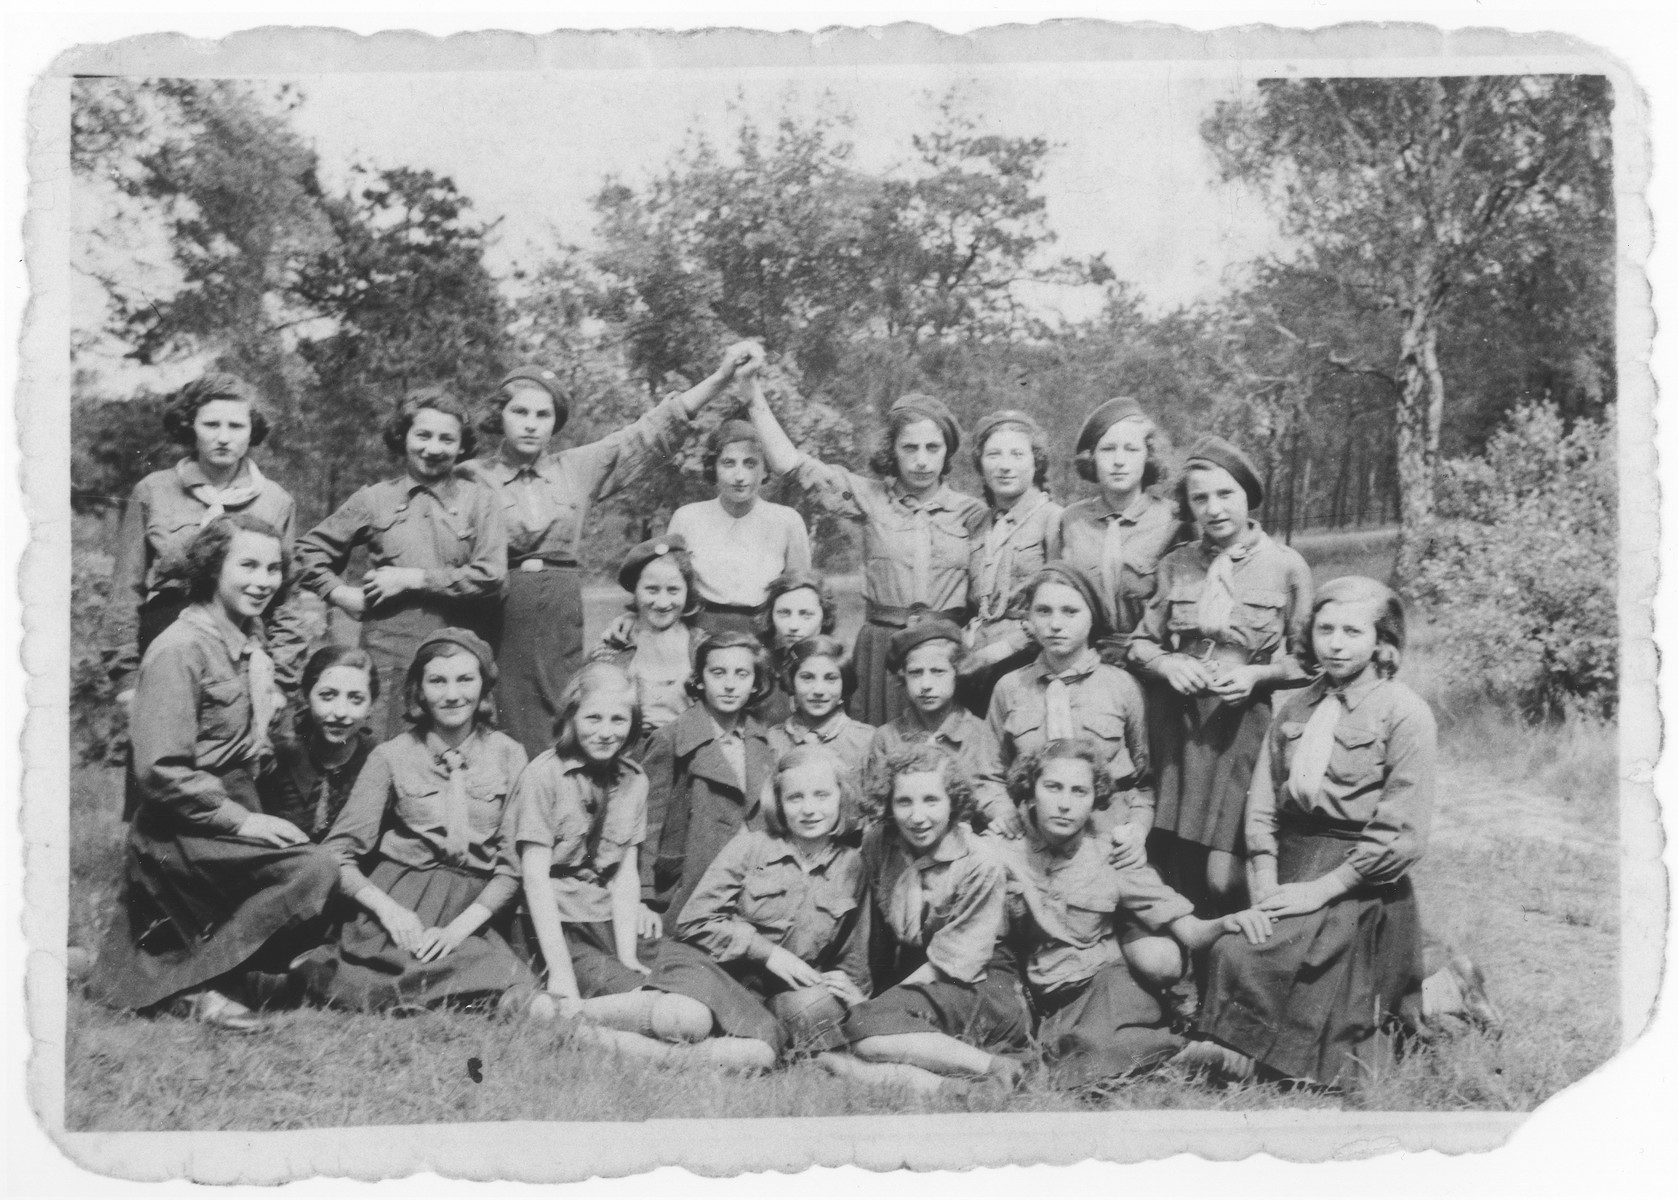 Group portrait of members of a Jewish girl scouting movement on an outing.  Among those pictured are Hela Szpiro, Estusia Fromer, Genia Dunska, Hadassa Cudzynowski, Rozia Feller, and Marisza Stibelman.